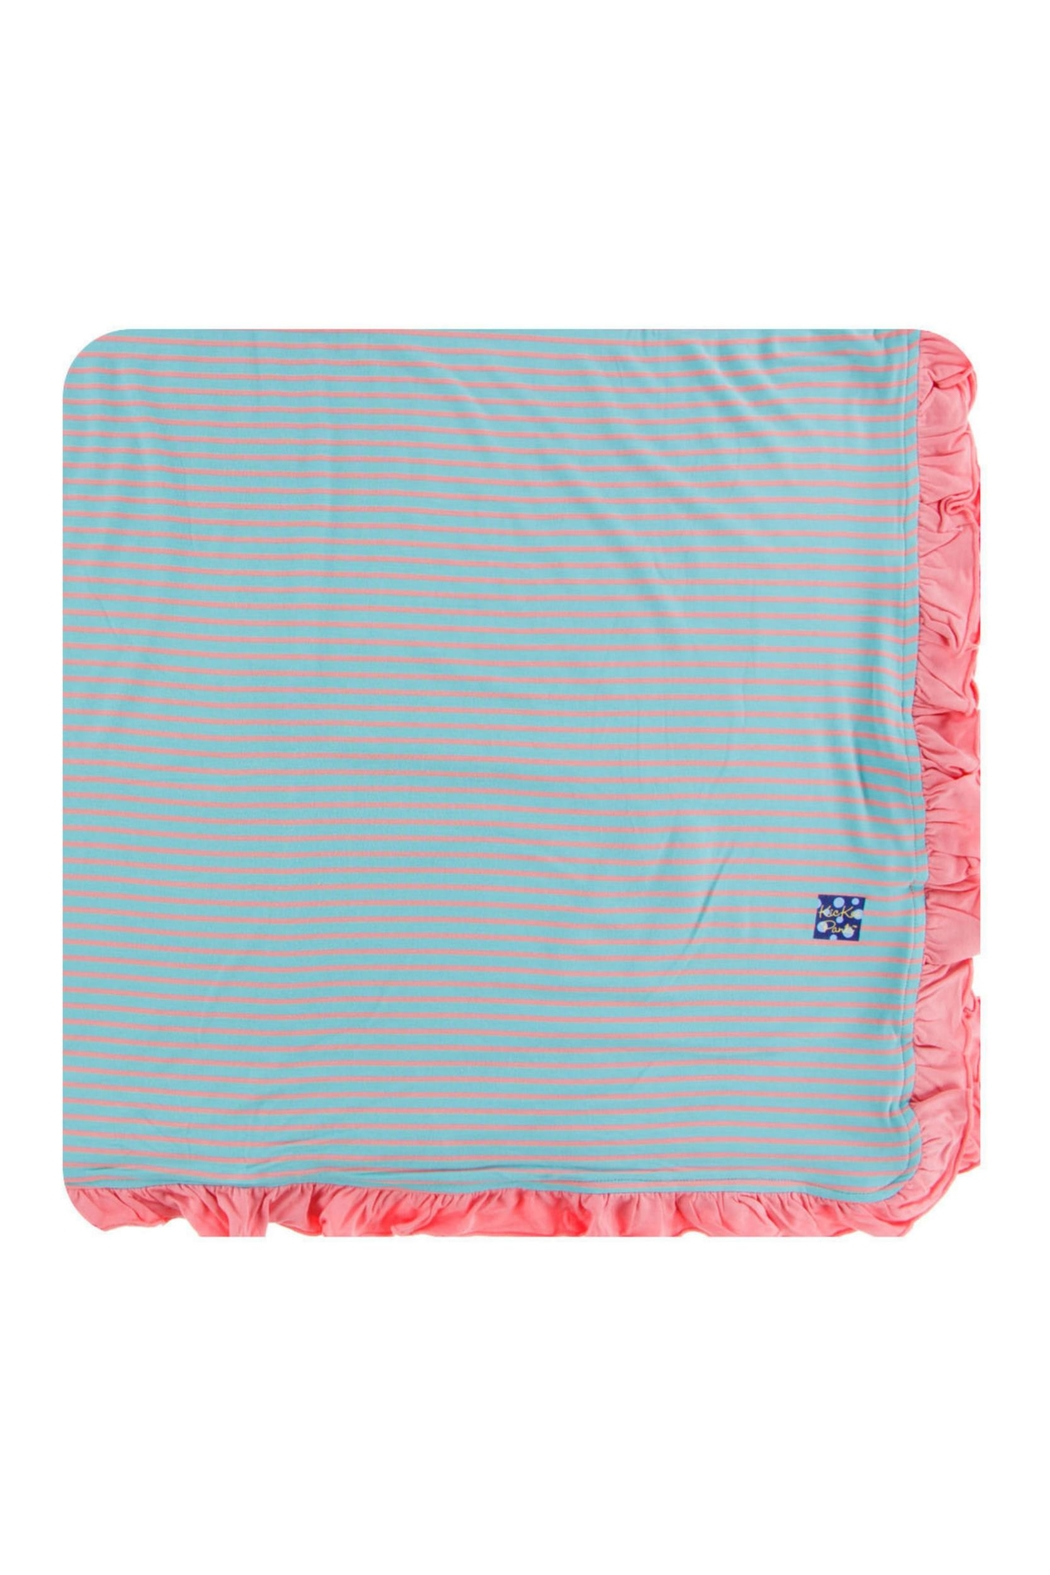 Kickee Pants Strawberry Stripe Toddler-Blanket - Front Cropped Image